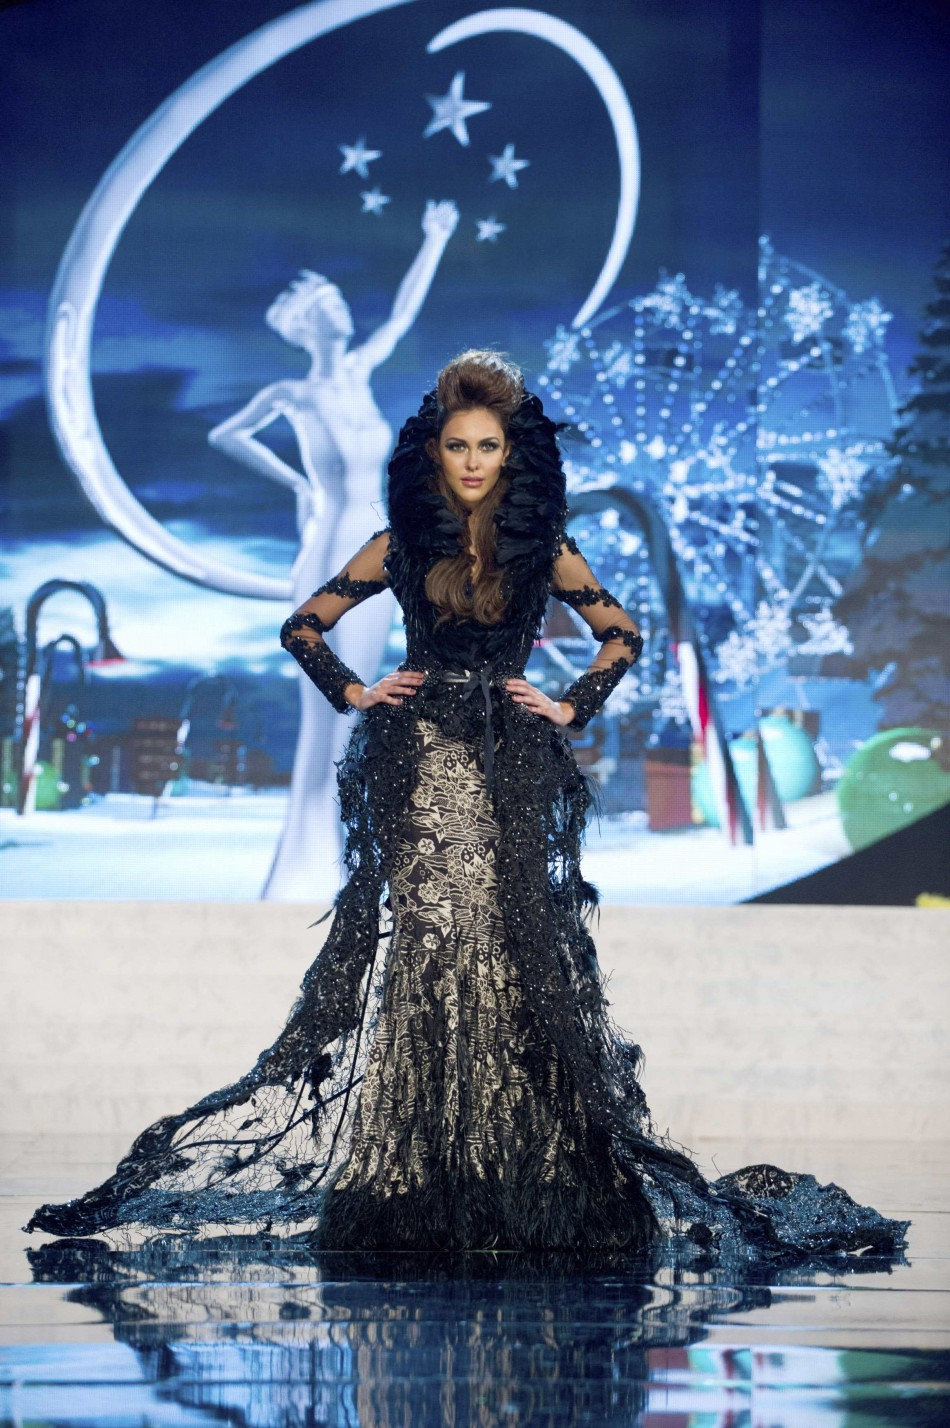 Miss Malaysia Kimberley Leggett on stage at the 2012 Miss Universe National Costume Show at PH Live in Las Vegas